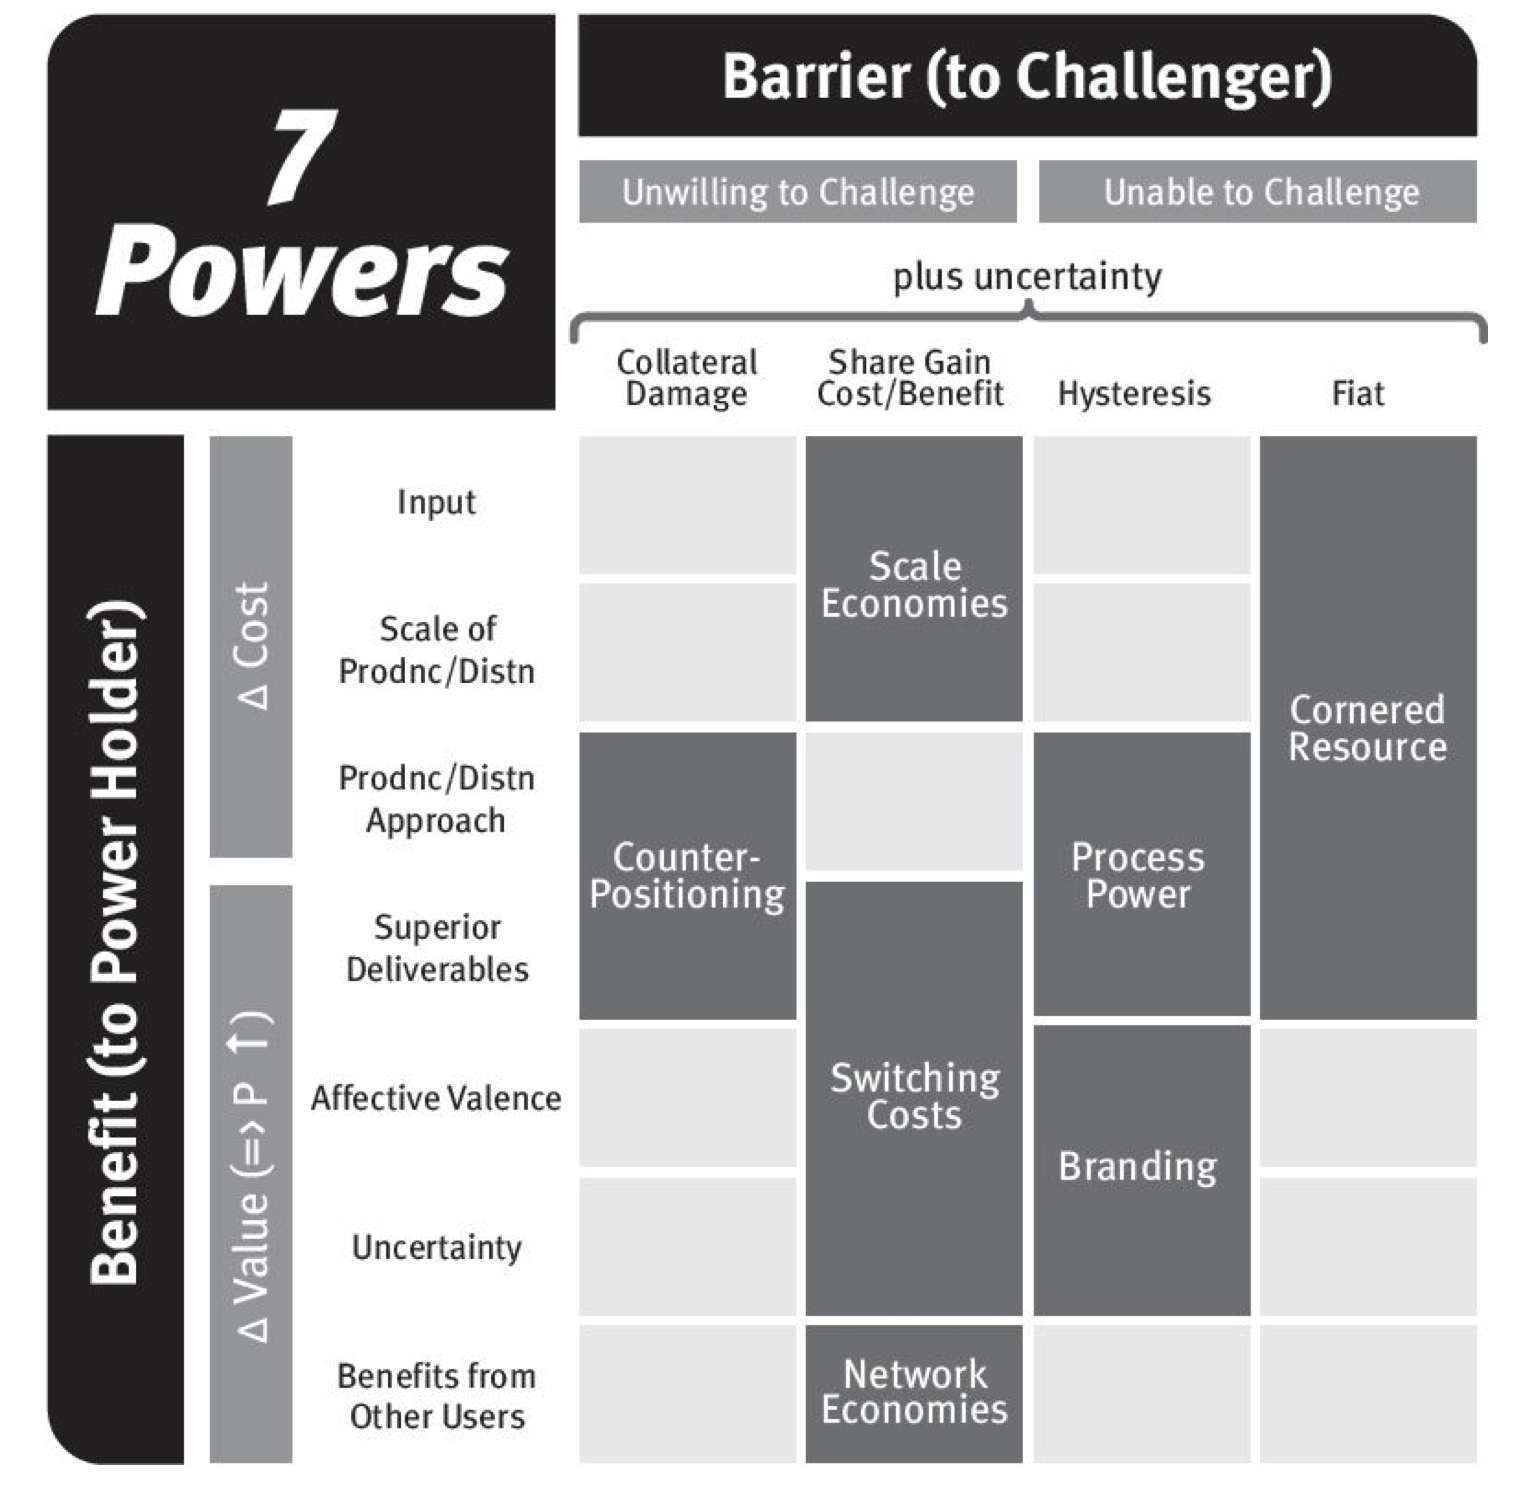 Power Benefits/Barriers